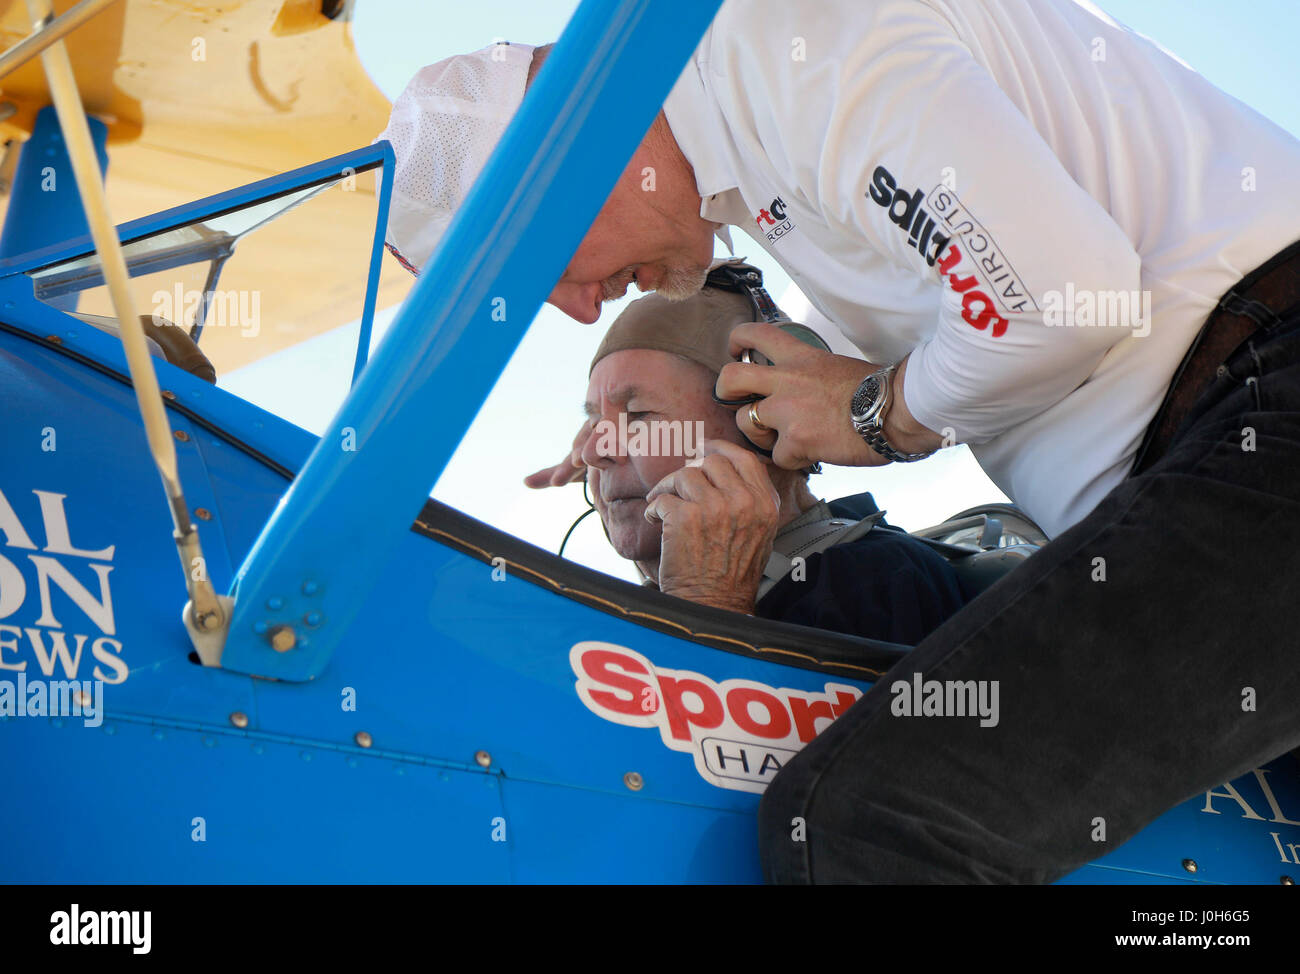 Florida, USA. 13th Apr, 2017. Bob Breiling, age 88, gets settled in the cockpit of a WWII-era biplane with help Stock Photo